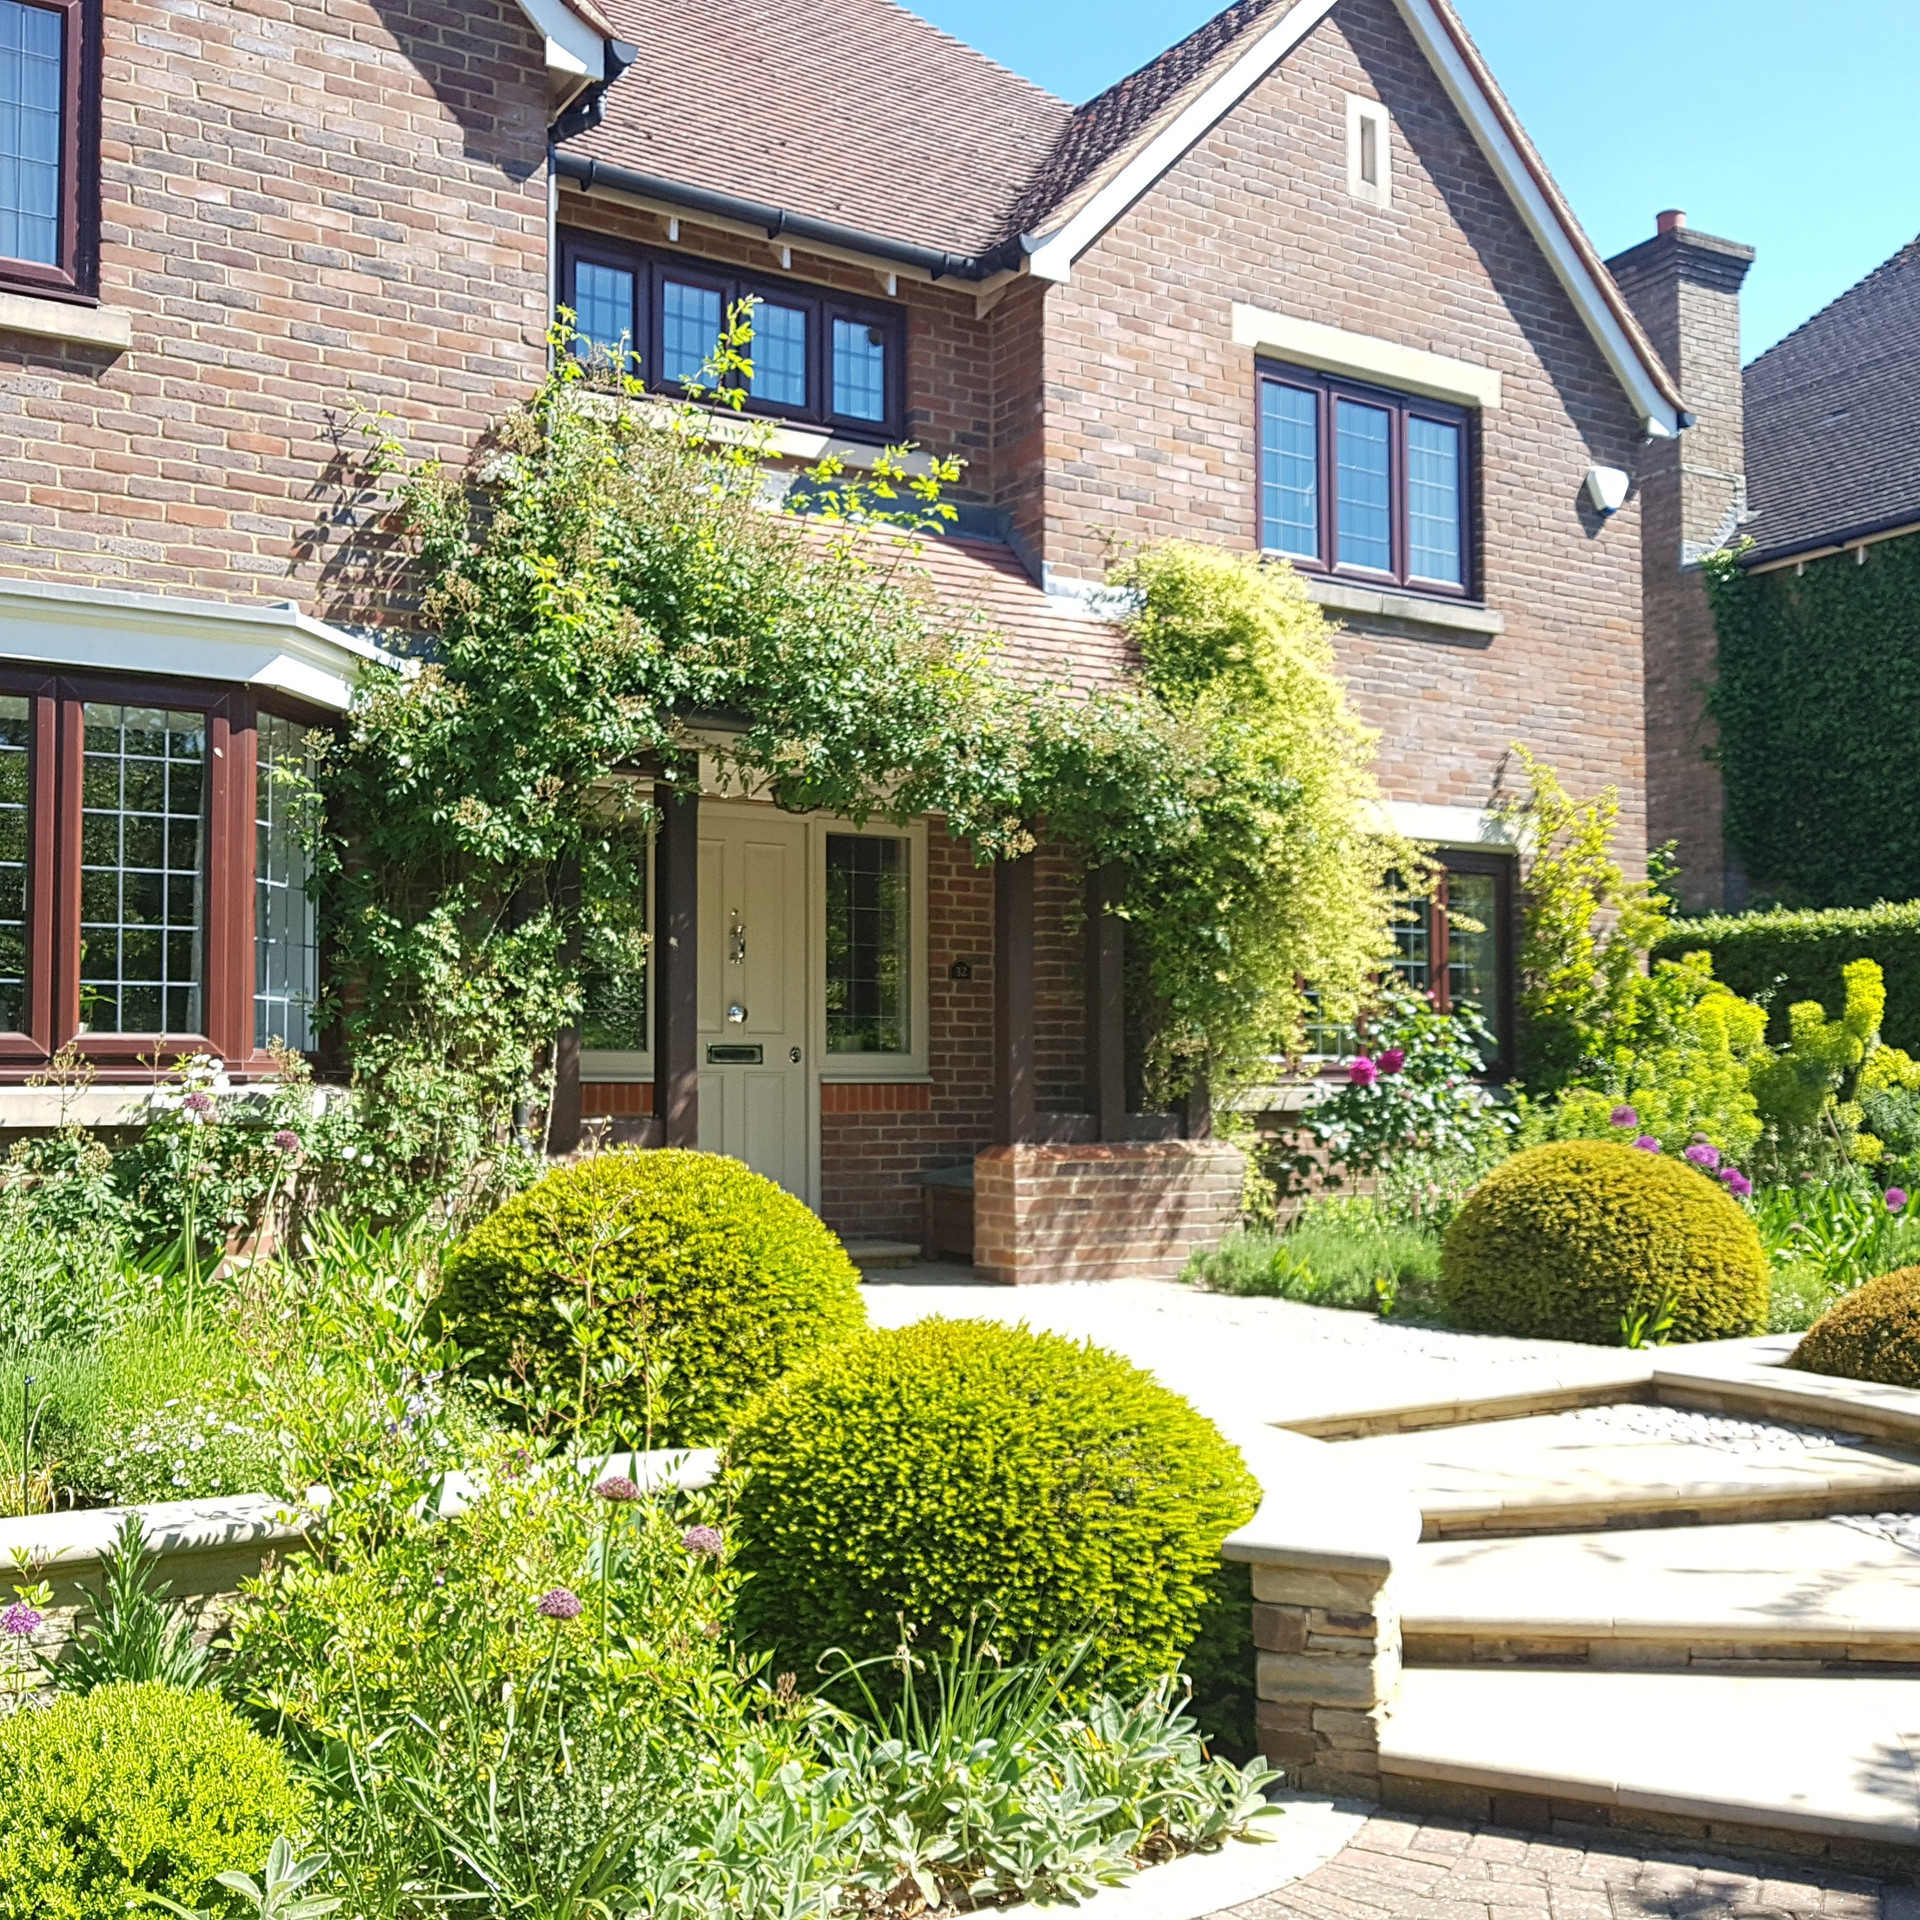 House in Banstead